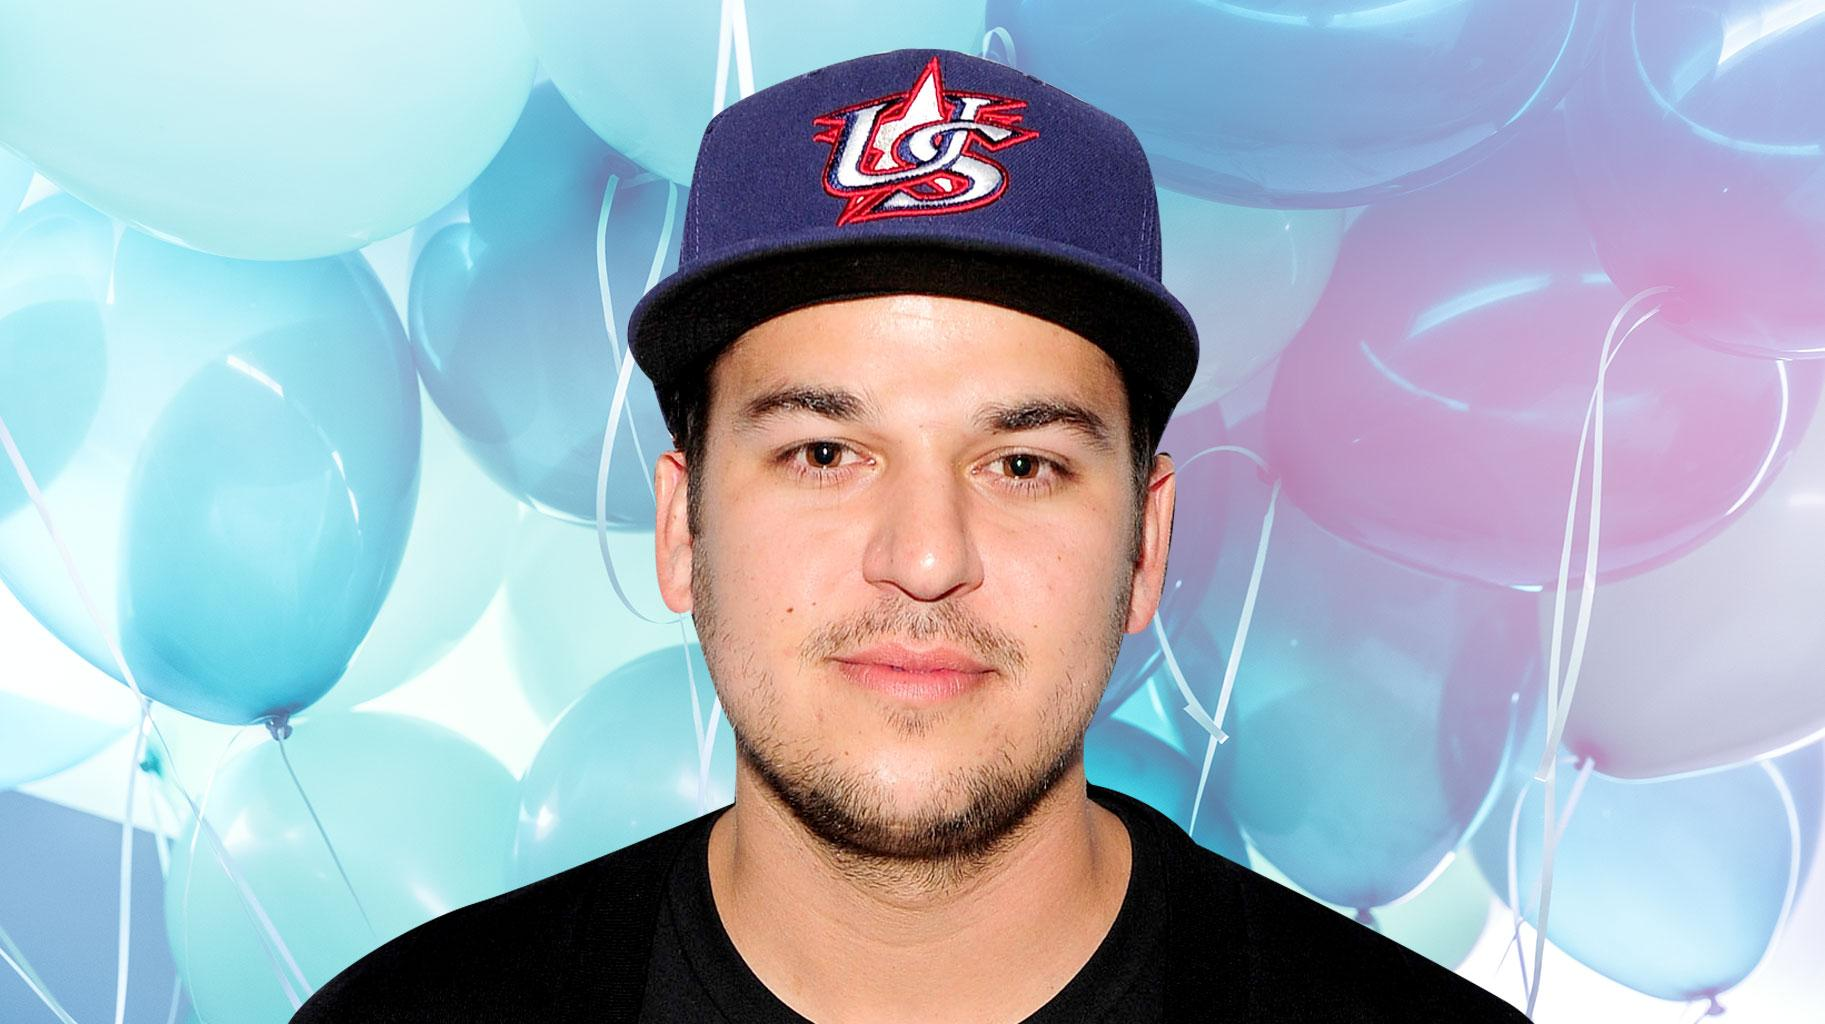 KUWK: Rob Kardashian Looks Like His Old Self In Pics From Khloe's Birthday Party - Check Out The Major Weight Loss!